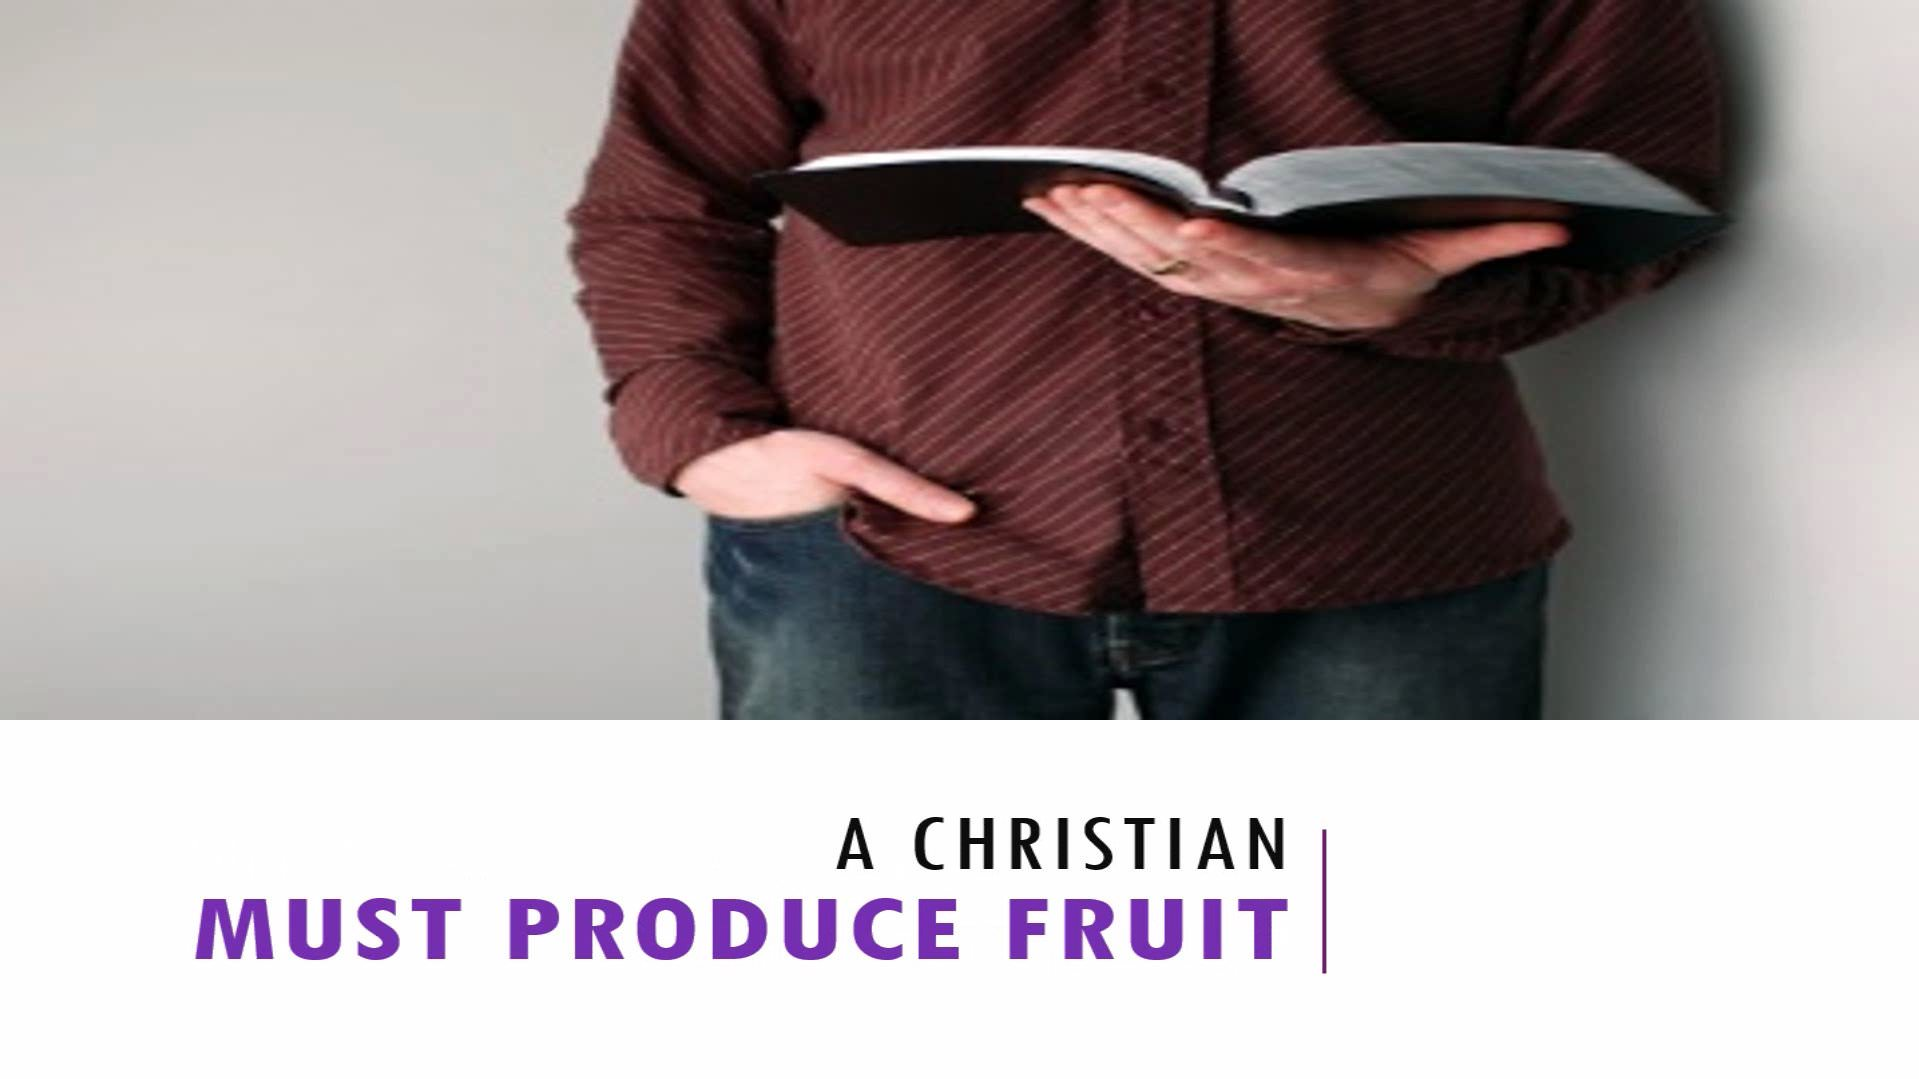 A Christian Must Produce Fruit